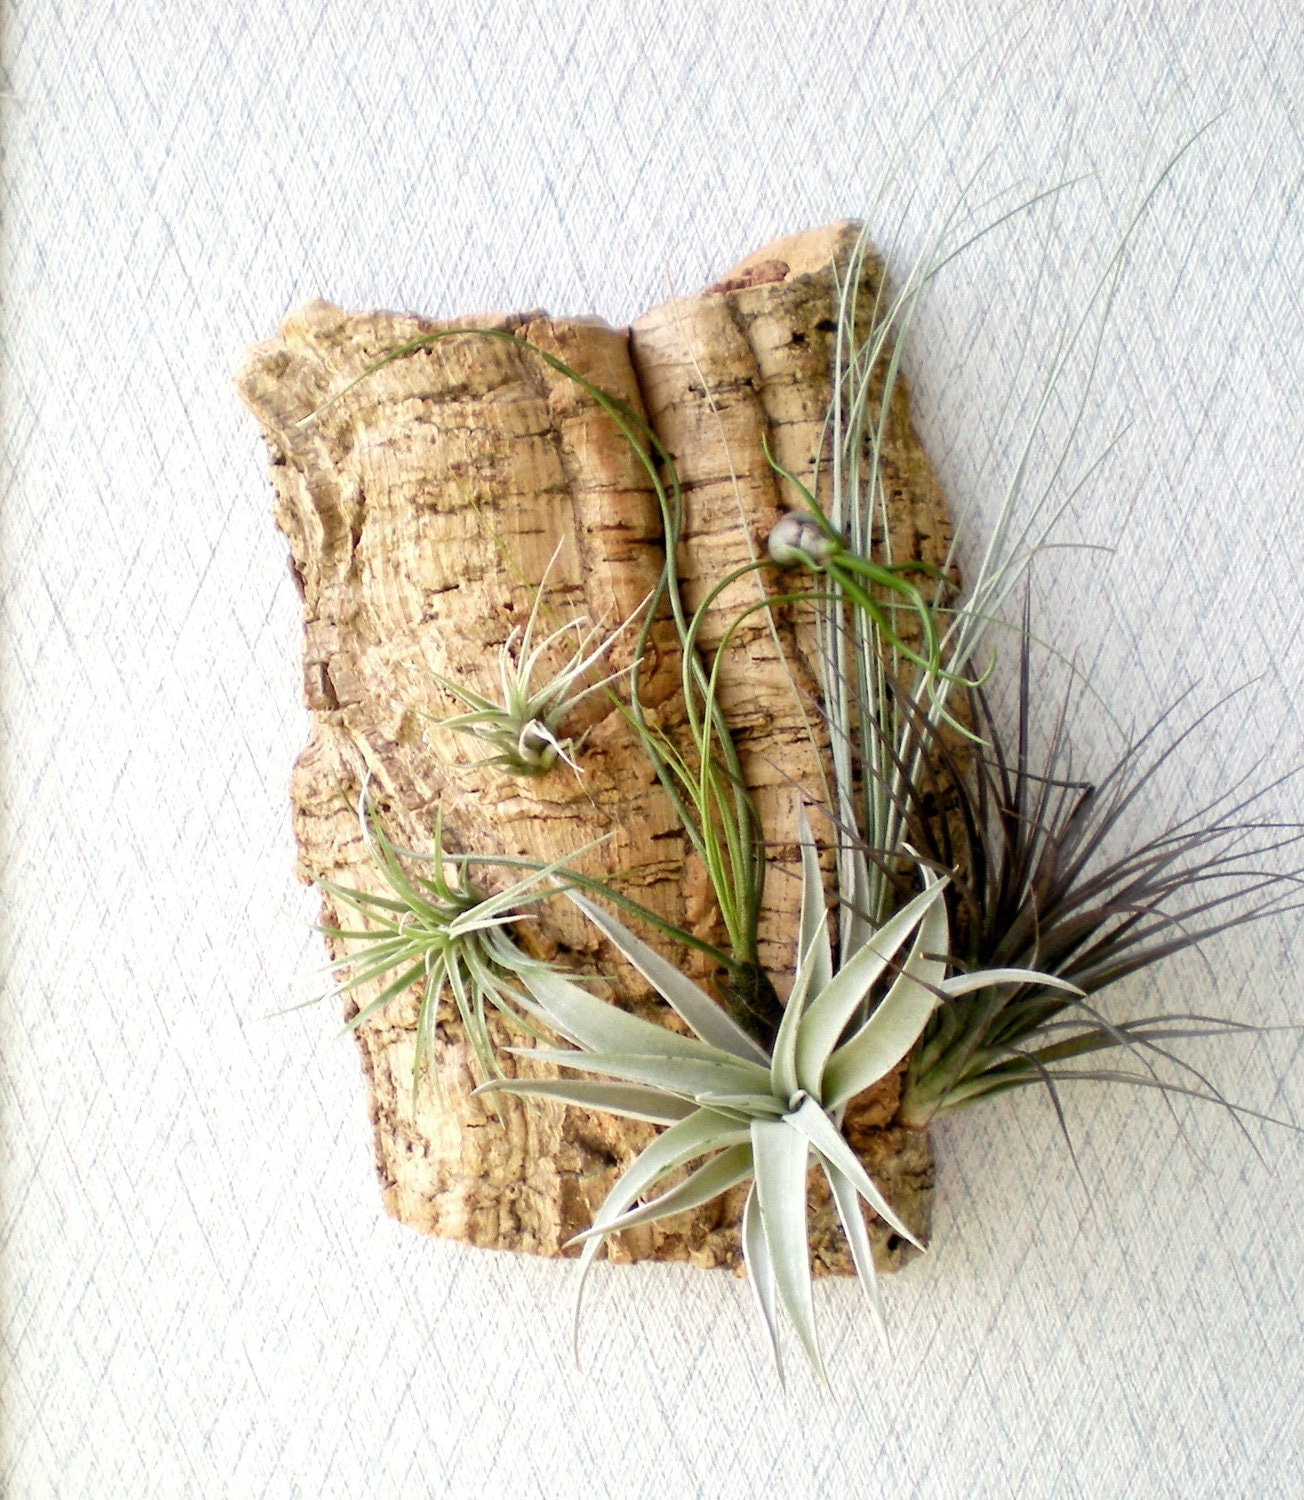 Wall Garden: Air Plants on Sustainable Virgin Cork Bark - Plantzilla